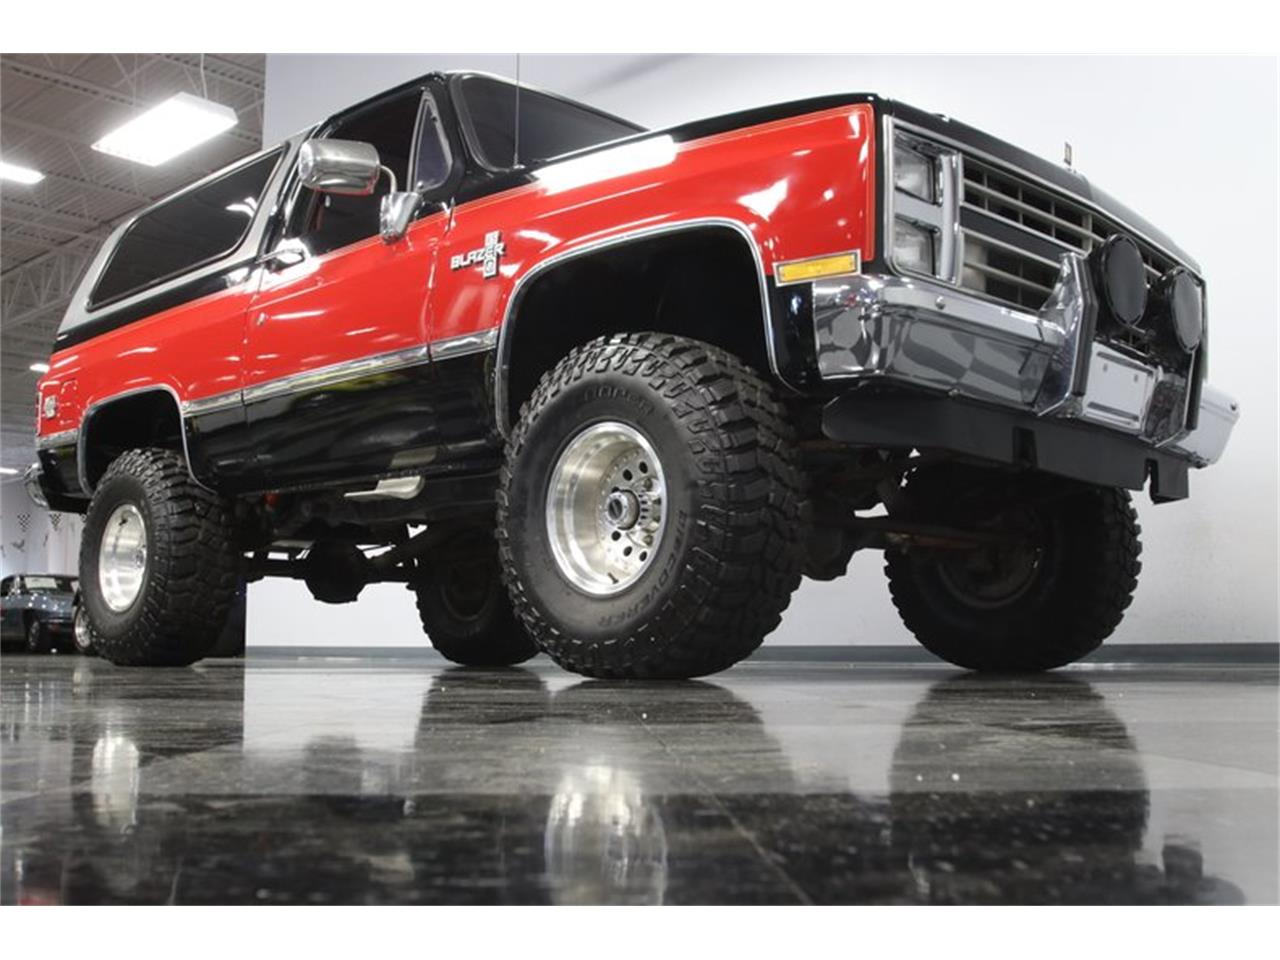 Large Picture of 1988 Chevrolet Blazer located in Concord North Carolina - $26,995.00 - QEFQ